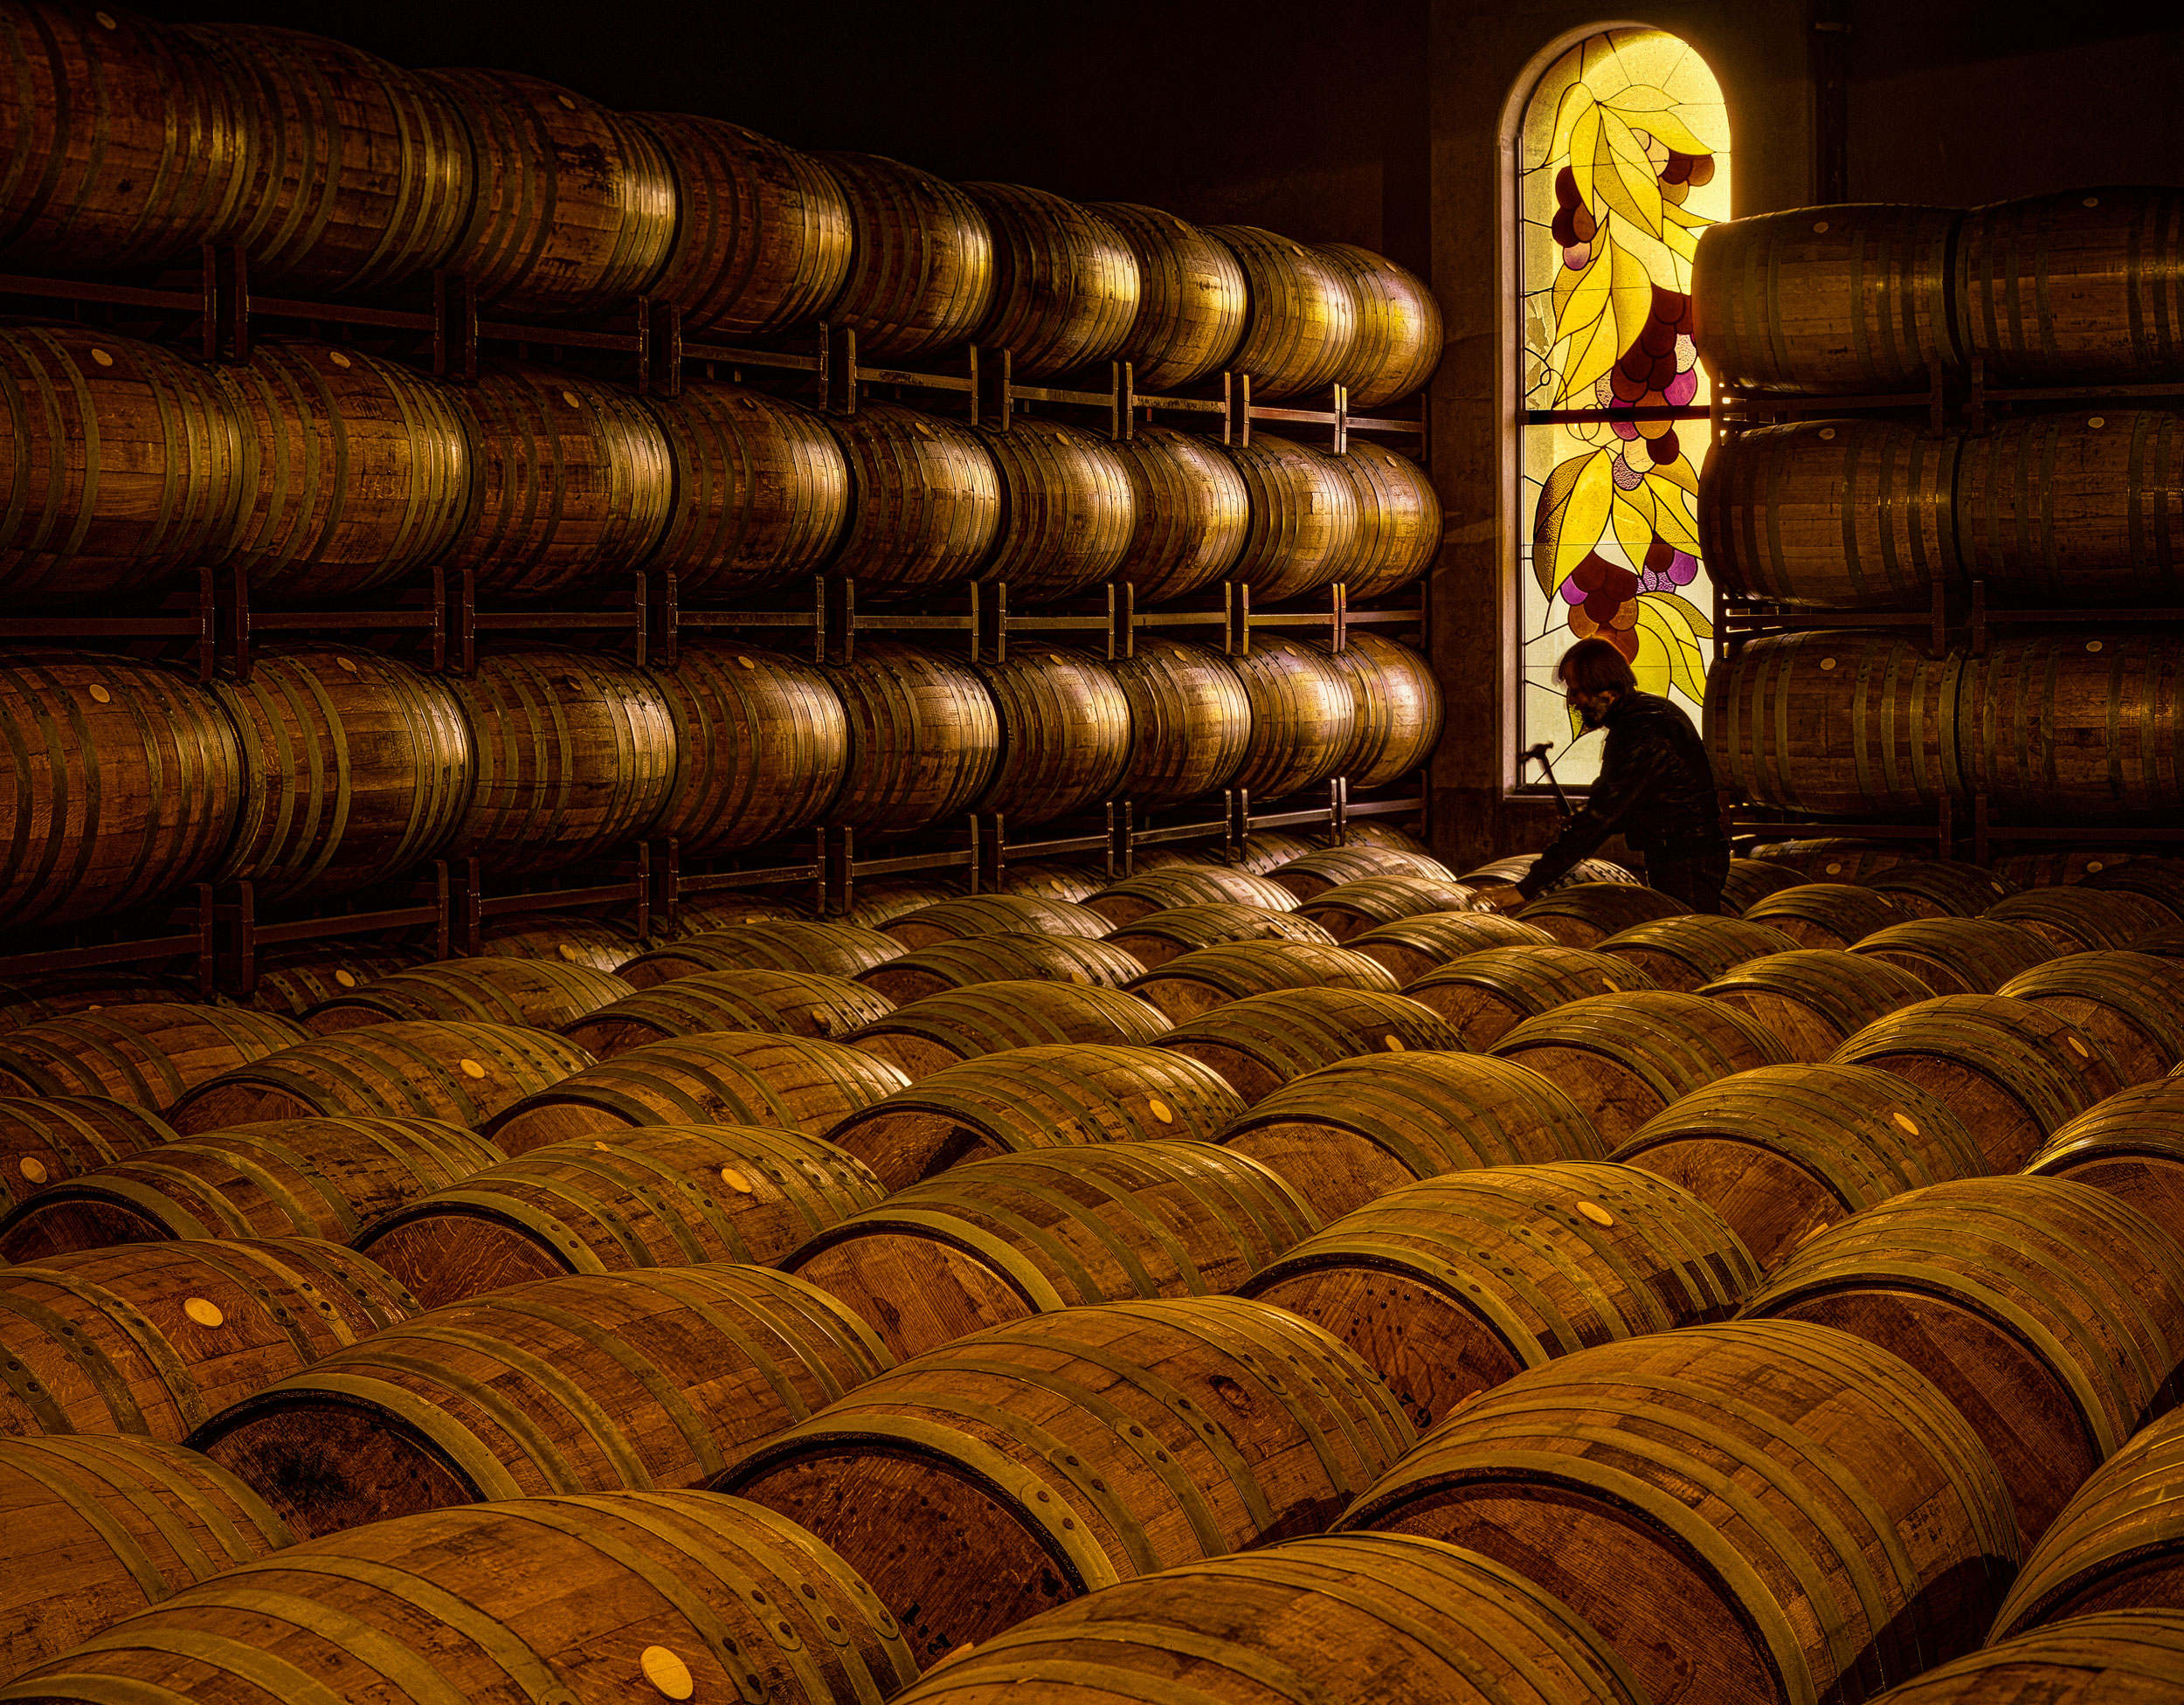 15 P-9000-19BarrelRoom-small.jpg